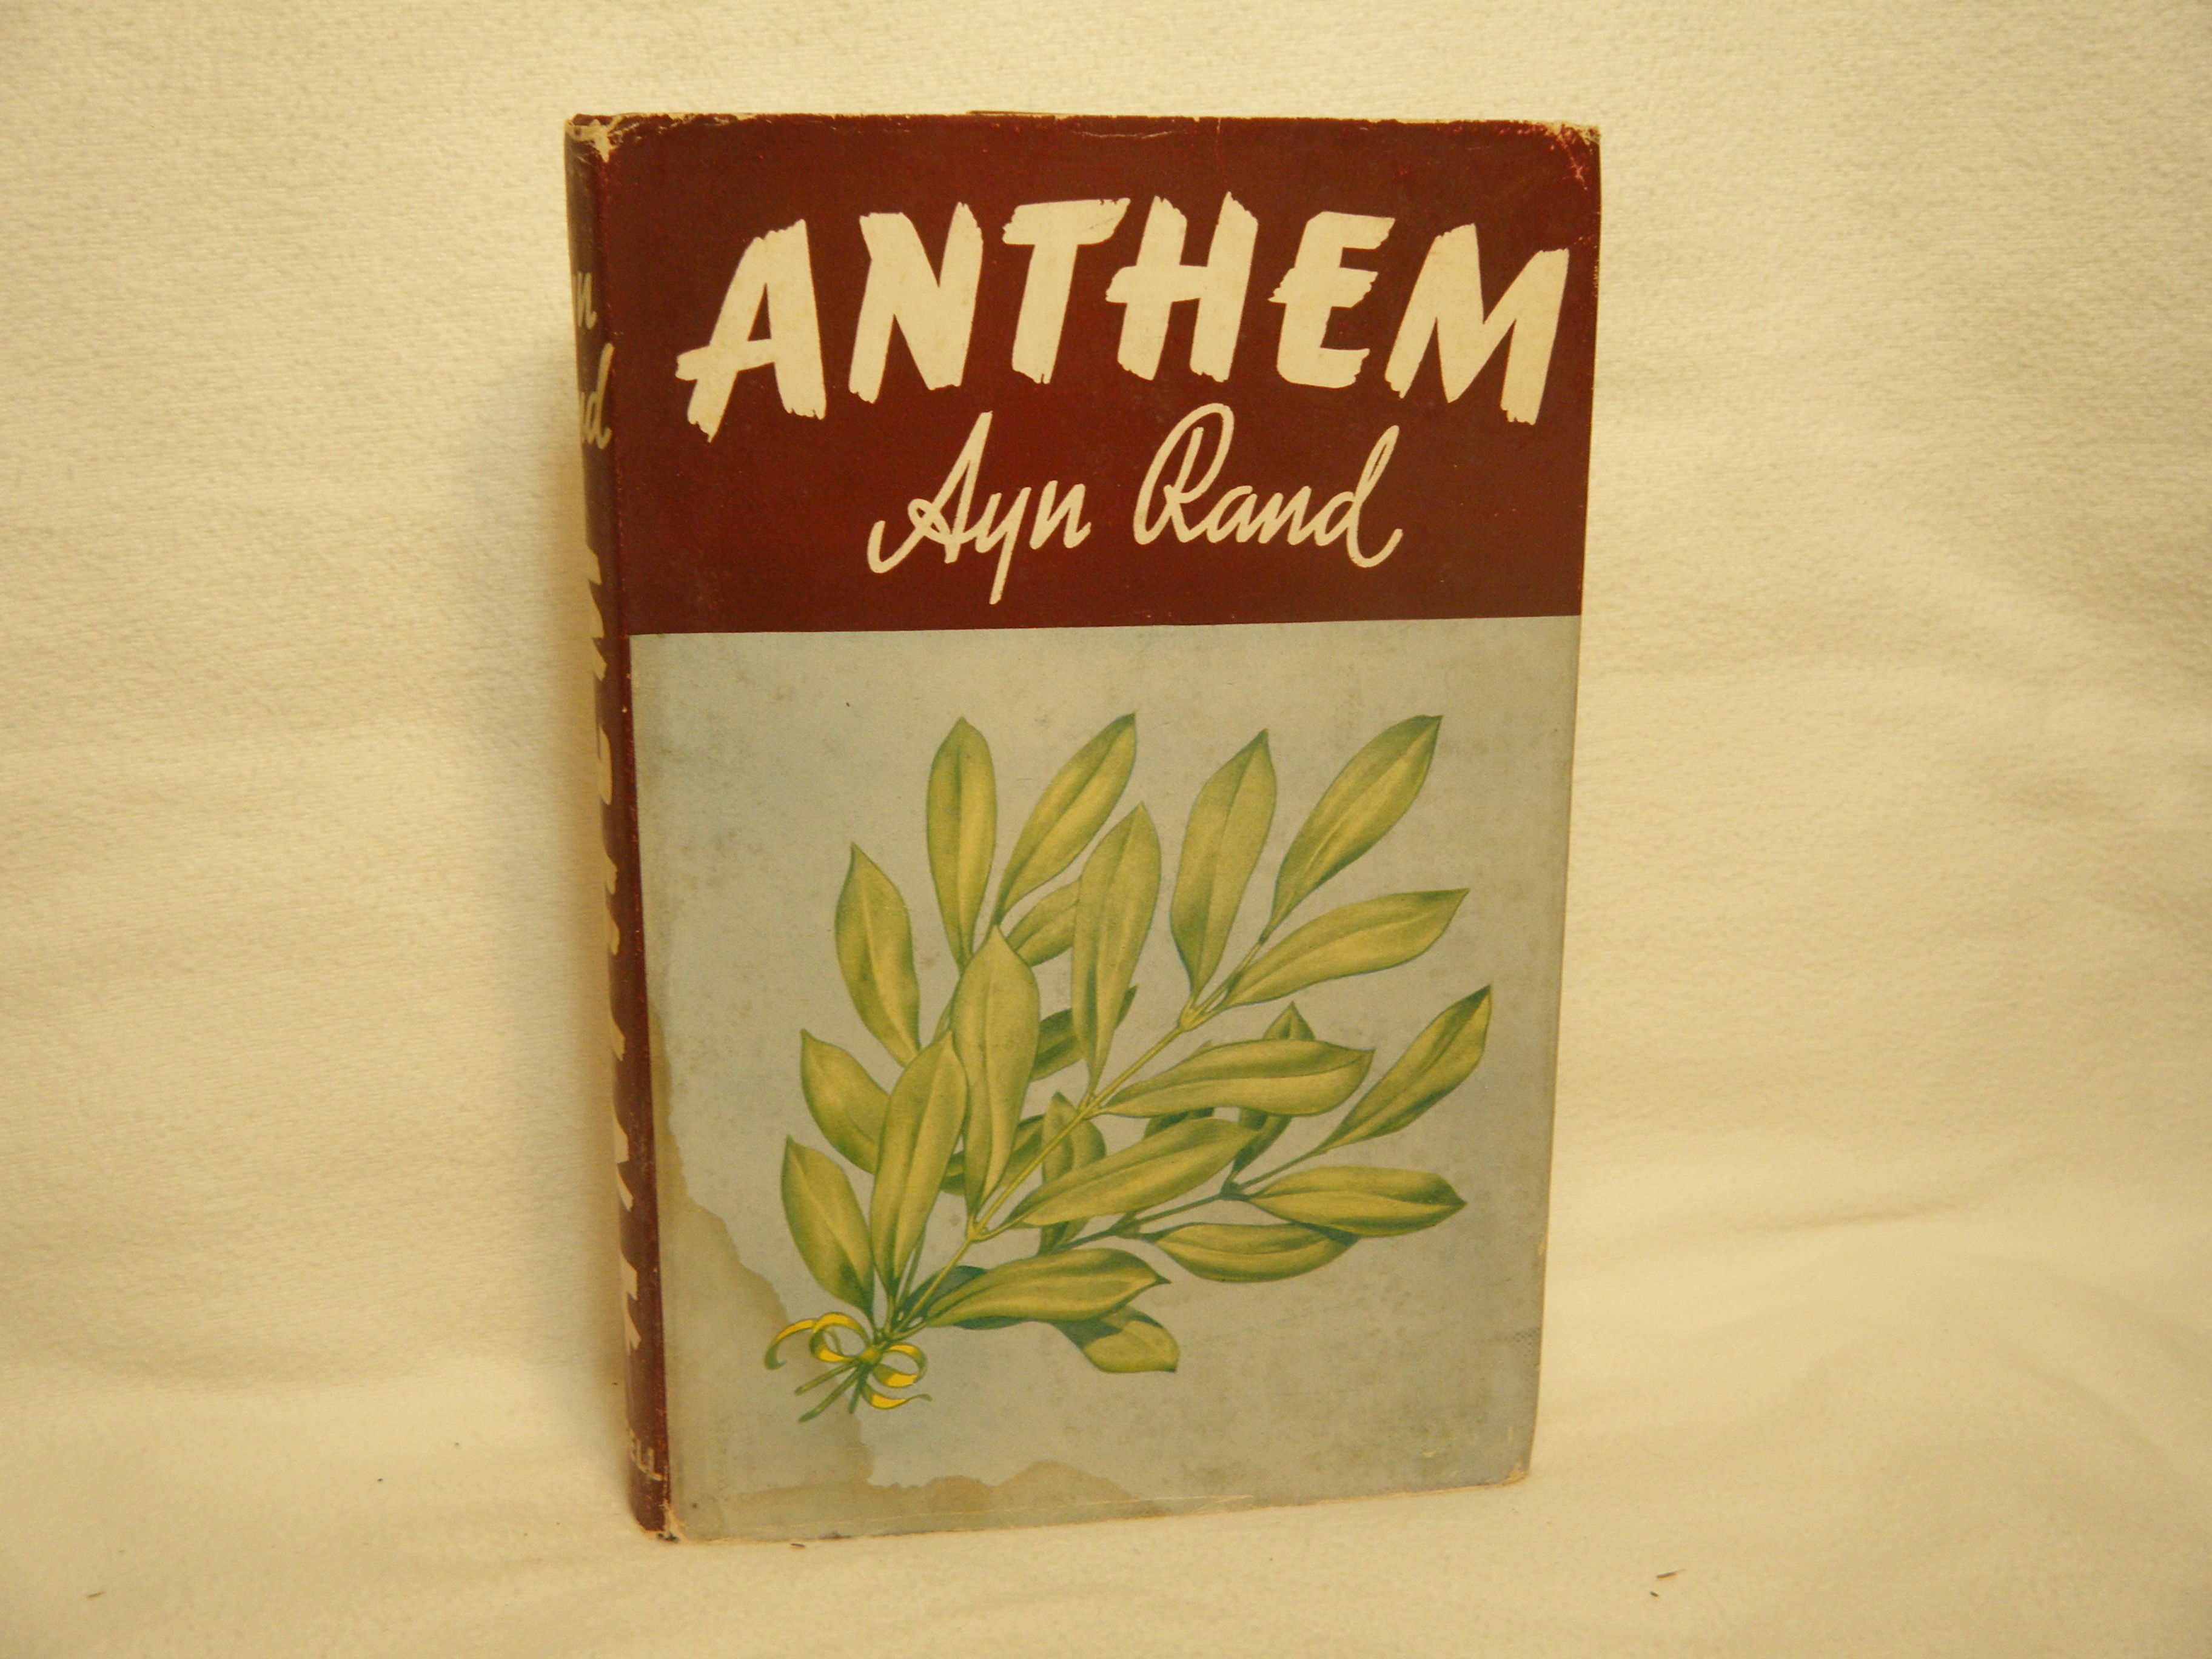 Anthem By Ayn Rand Hardcover 1953 From Curtis Paul Books Inc